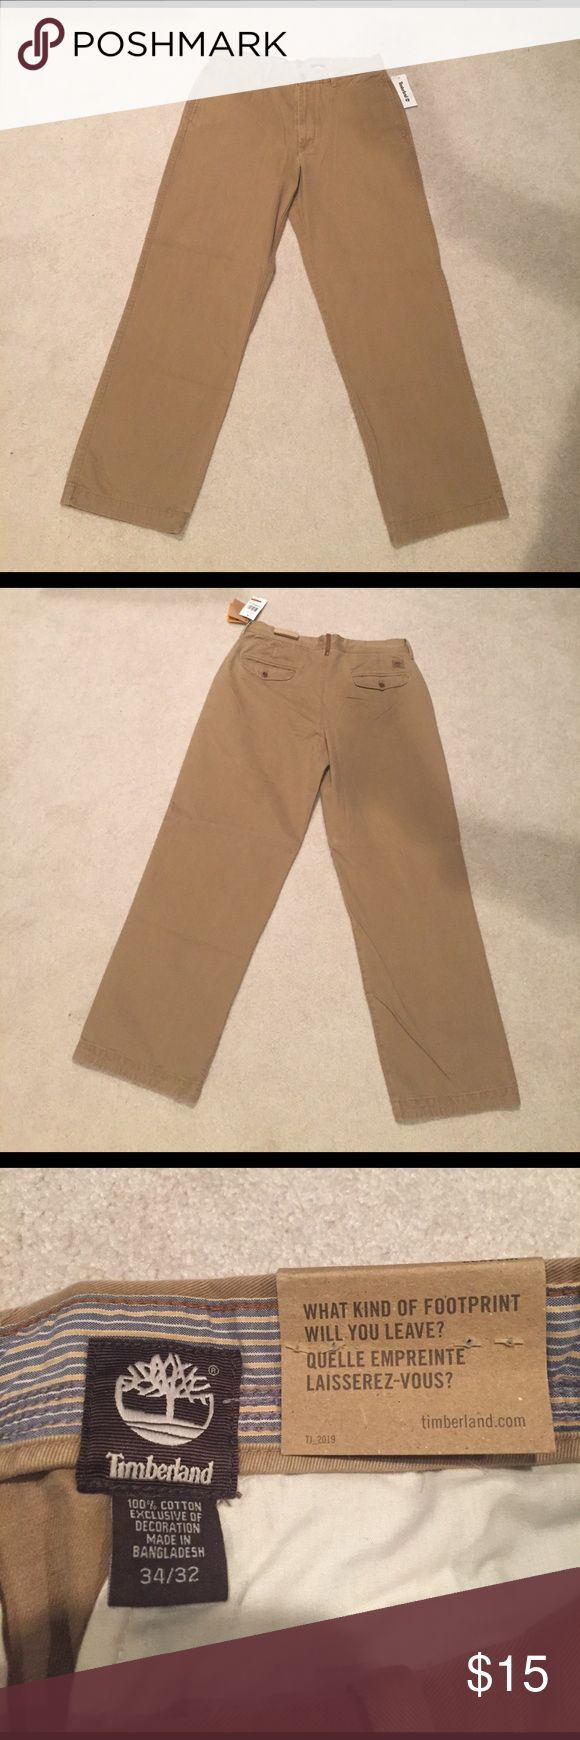 Timberland 34/32 Size Khaki Pants. 34/32 size. Never worn. Brand new with original tags. No rips or stains. Timberland Pants Chinos & Khakis